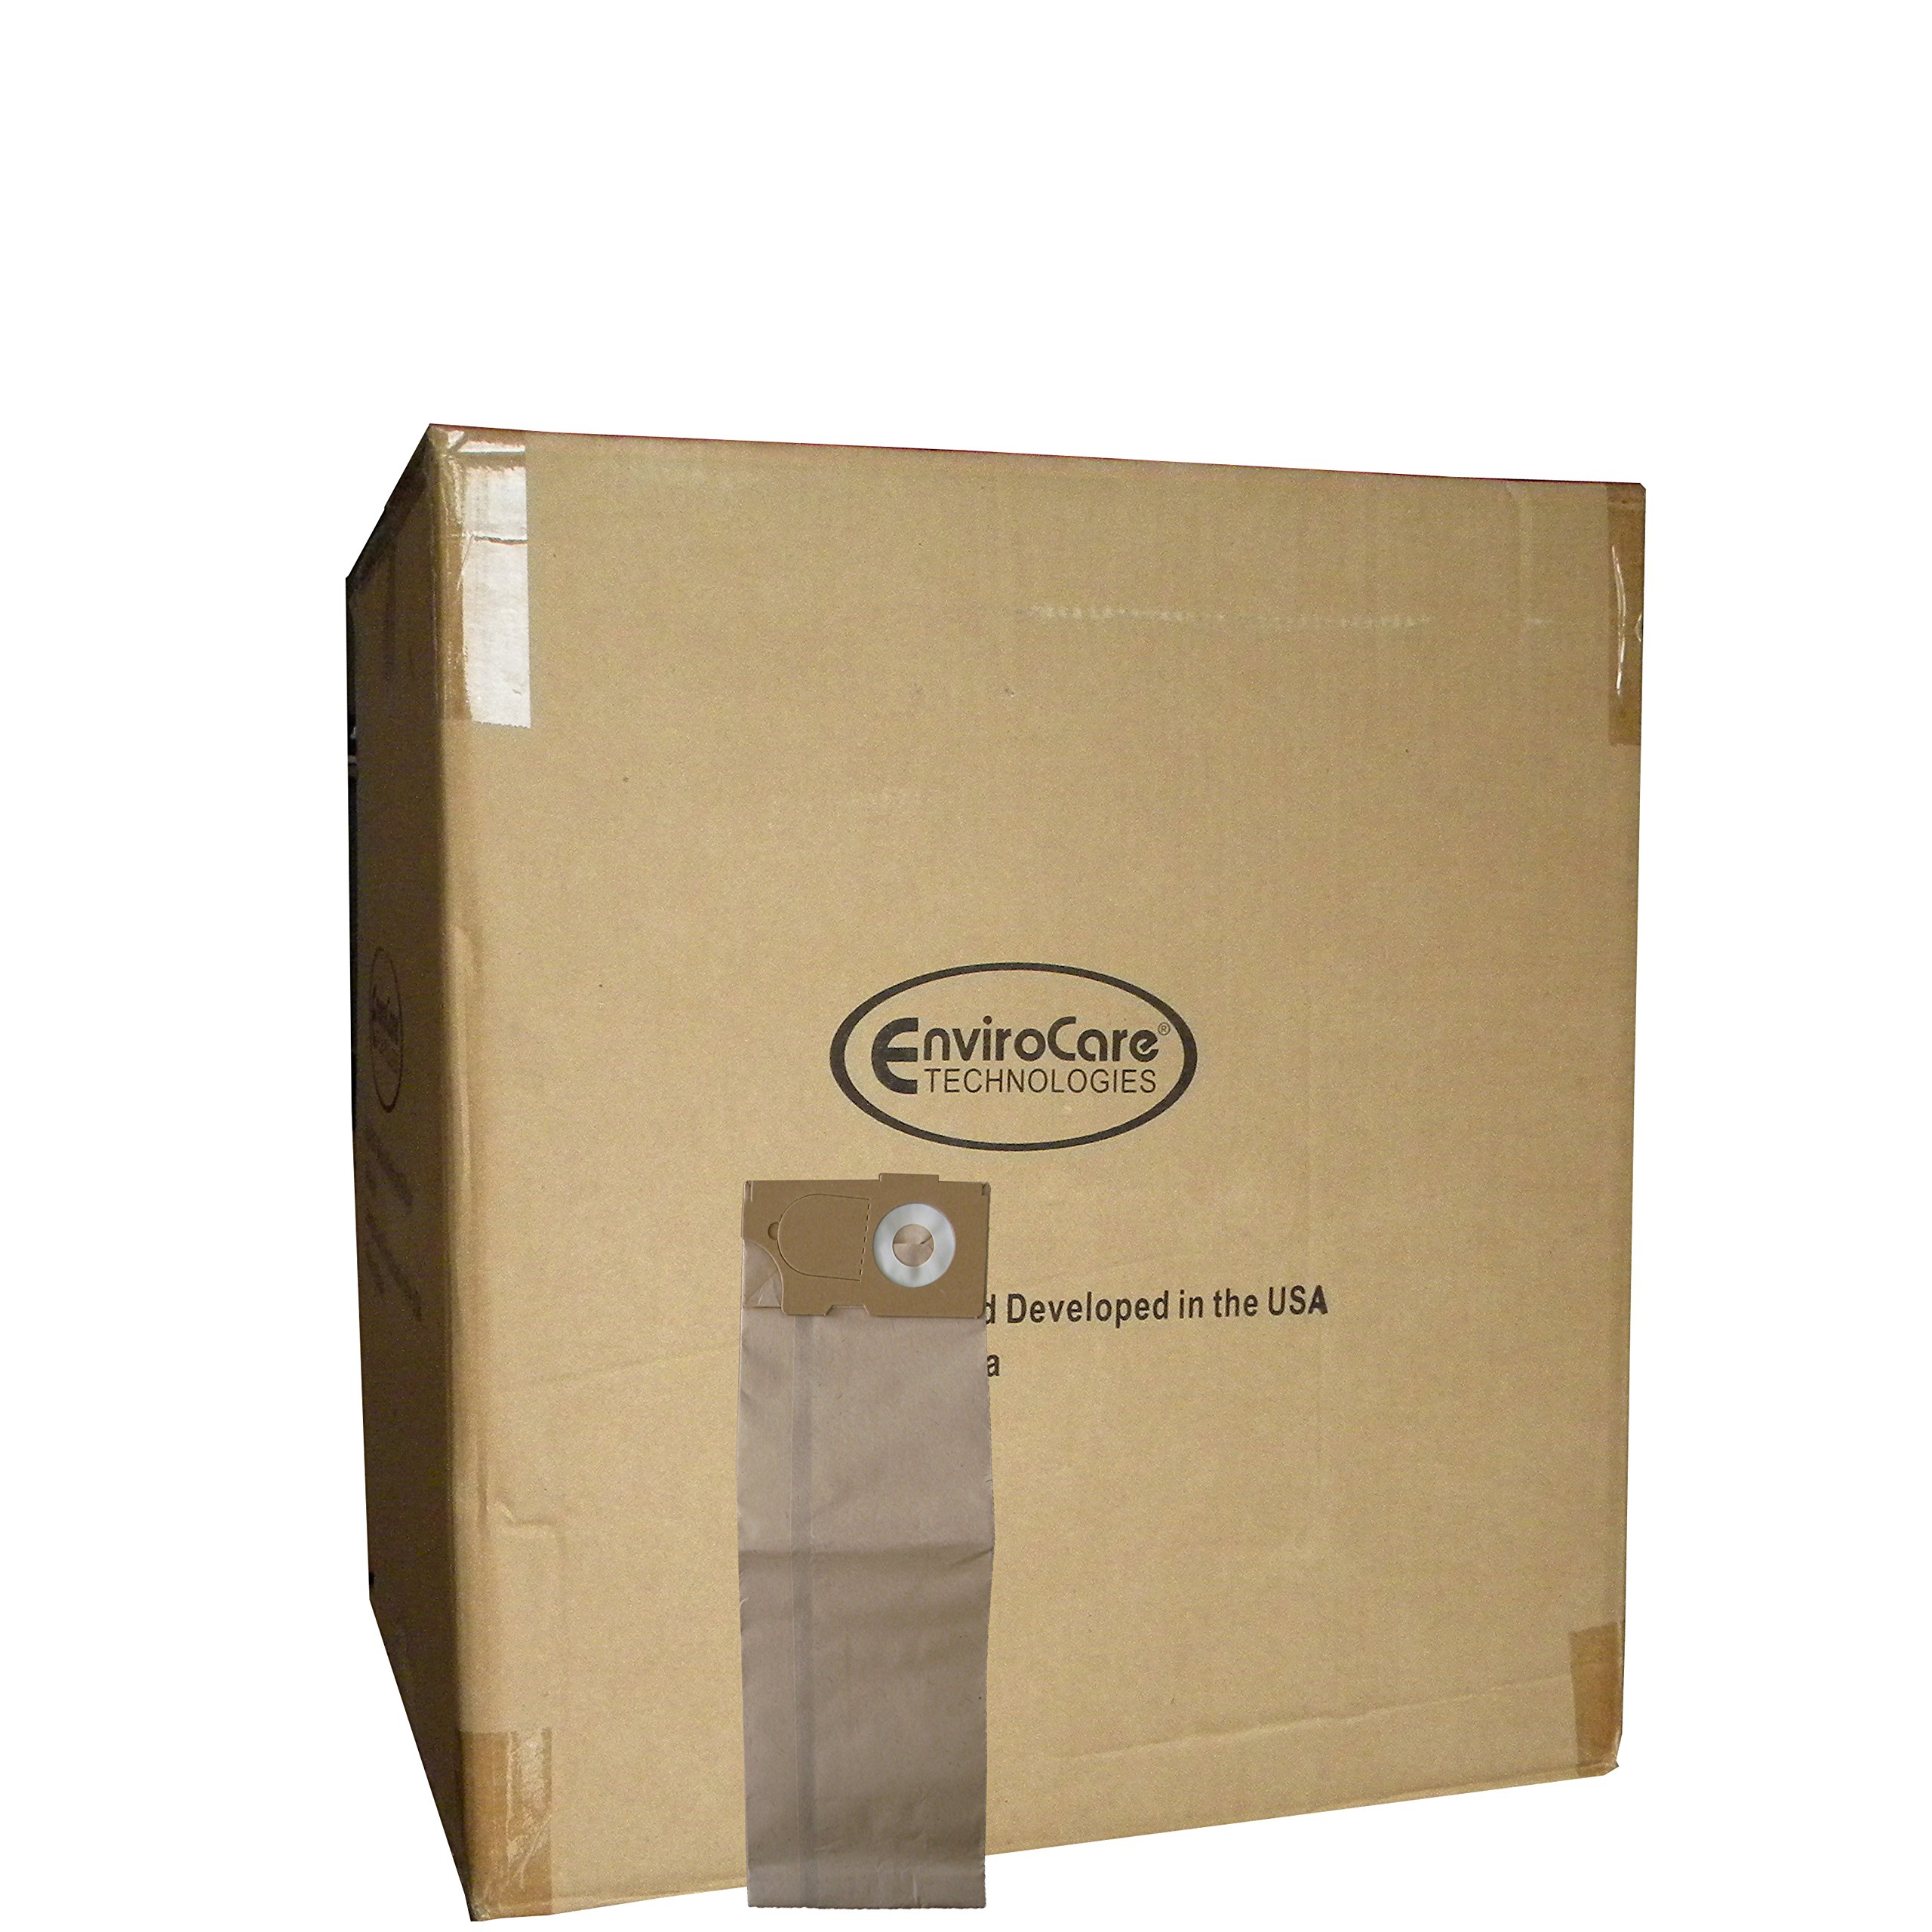 Whole Case of Windsor Versamatic, Allstar Javelin, Betco, Tornado-Karcher, NSS Marshal, and Triple S (SSS) Commercial Upright micro lined Allergy vacuum bags by EnviroCare